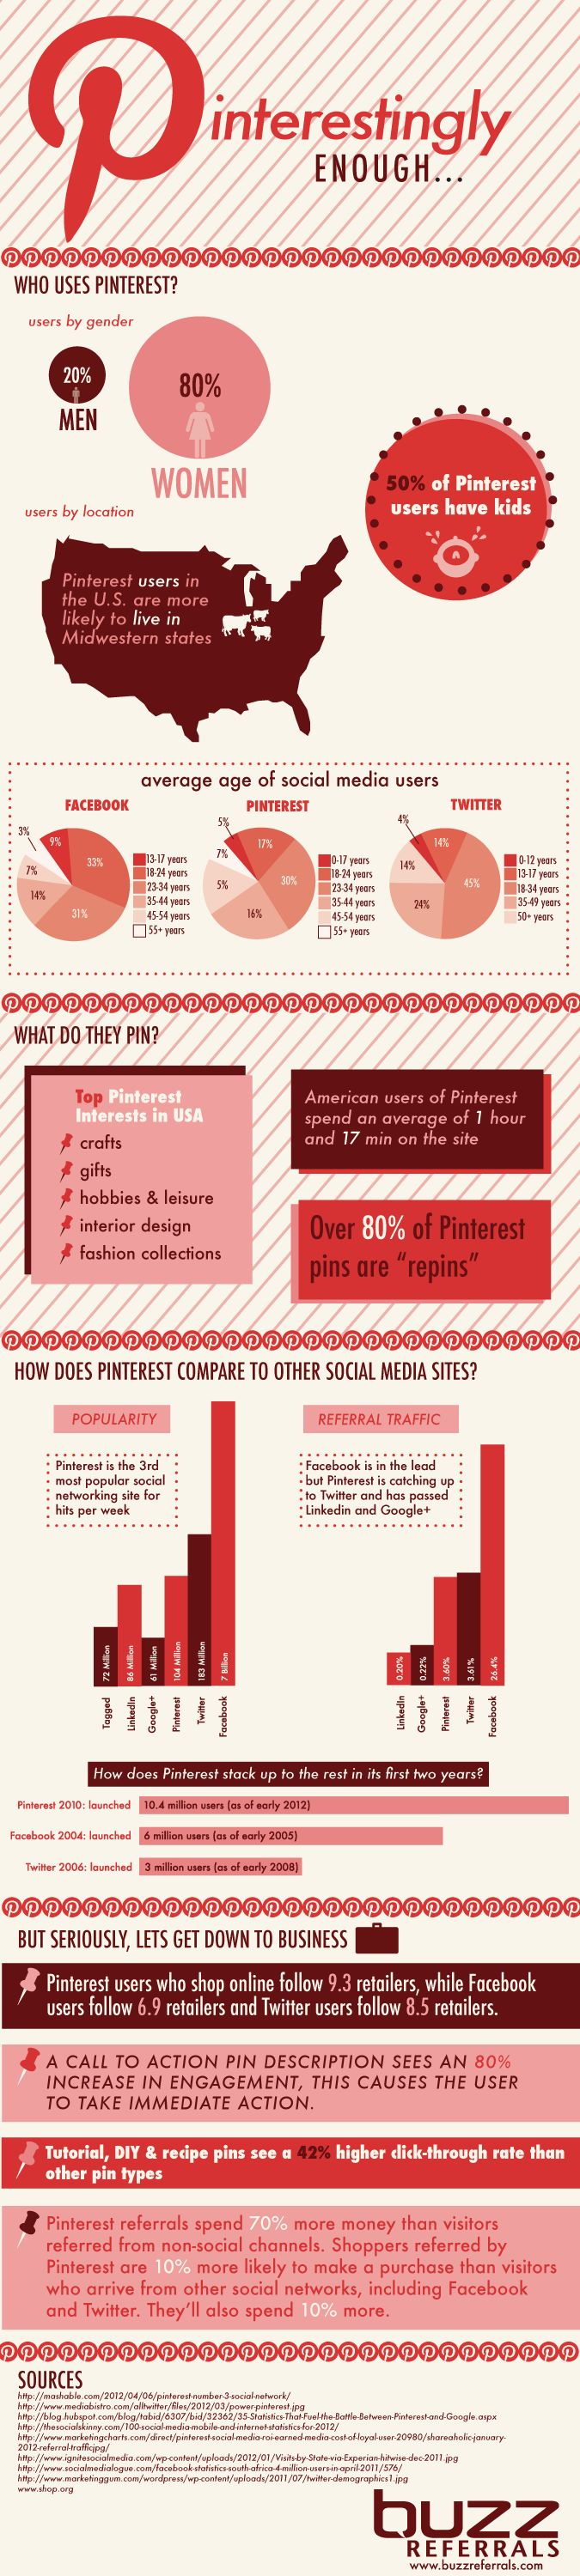 Pinterest: 80% of users are women